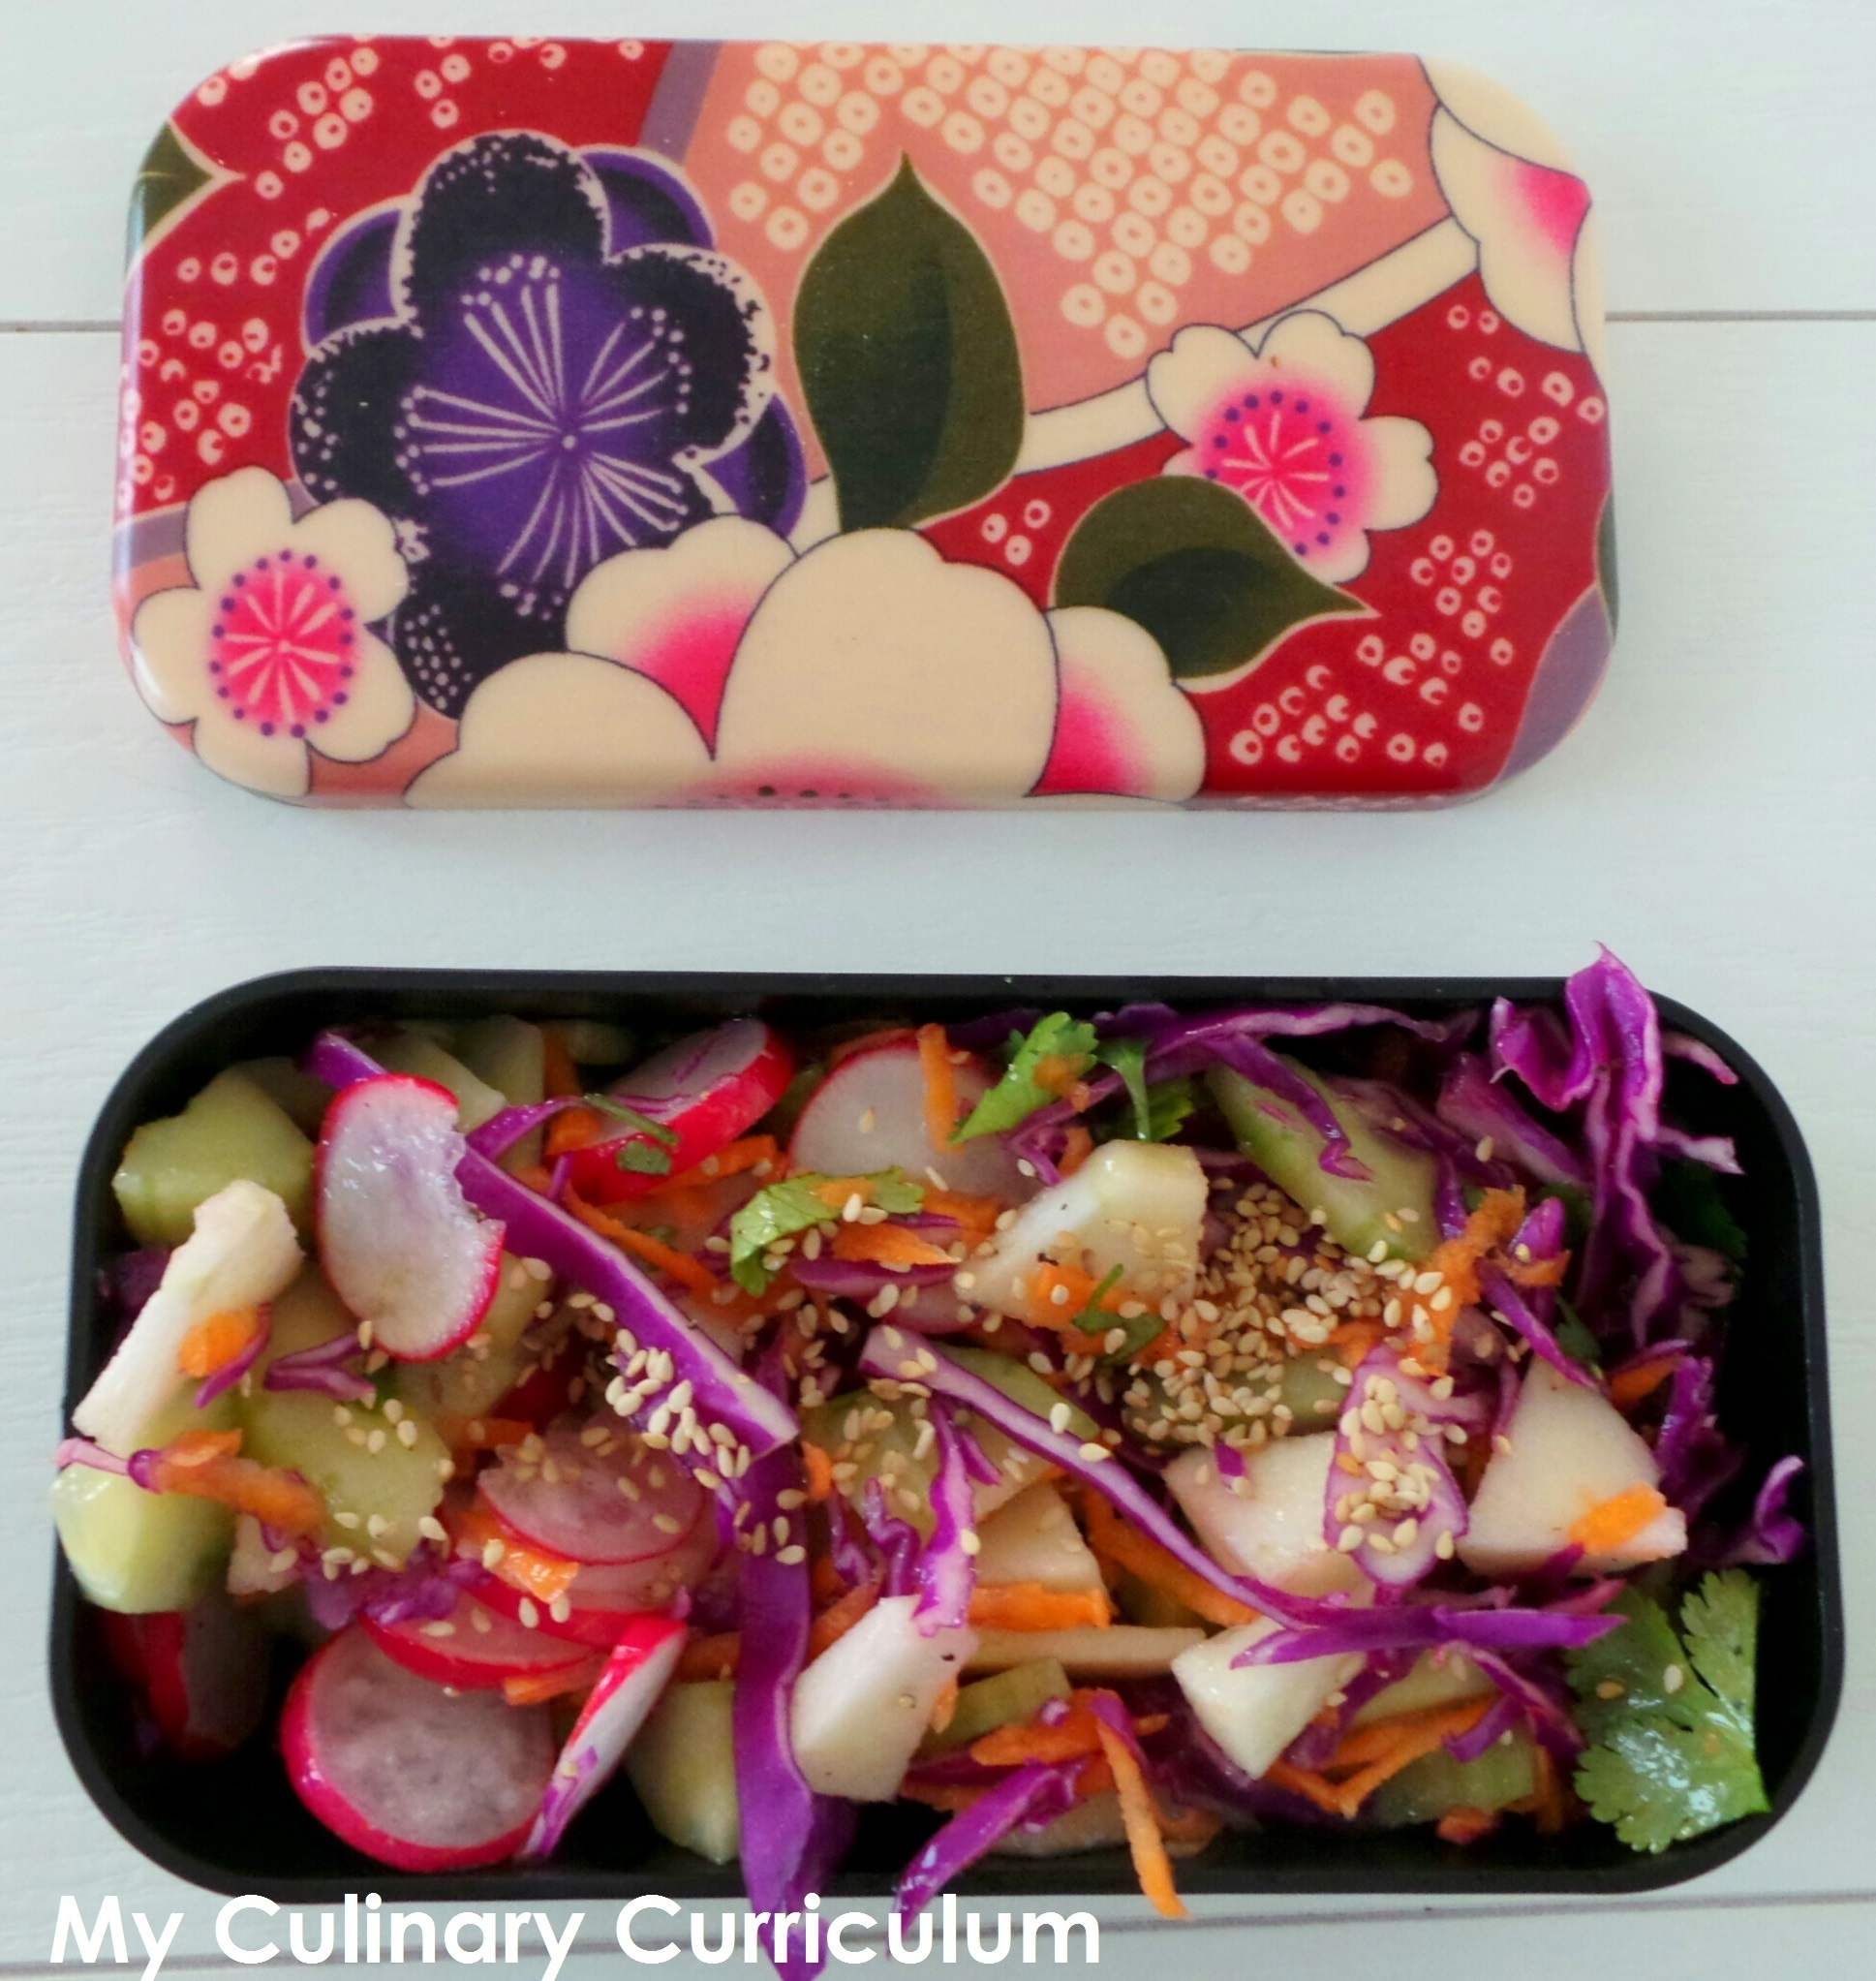 Bento de  salade chou rouge, pomme, concombre et radis (Bento of red cabbage salad, apple, cucumber and radish)